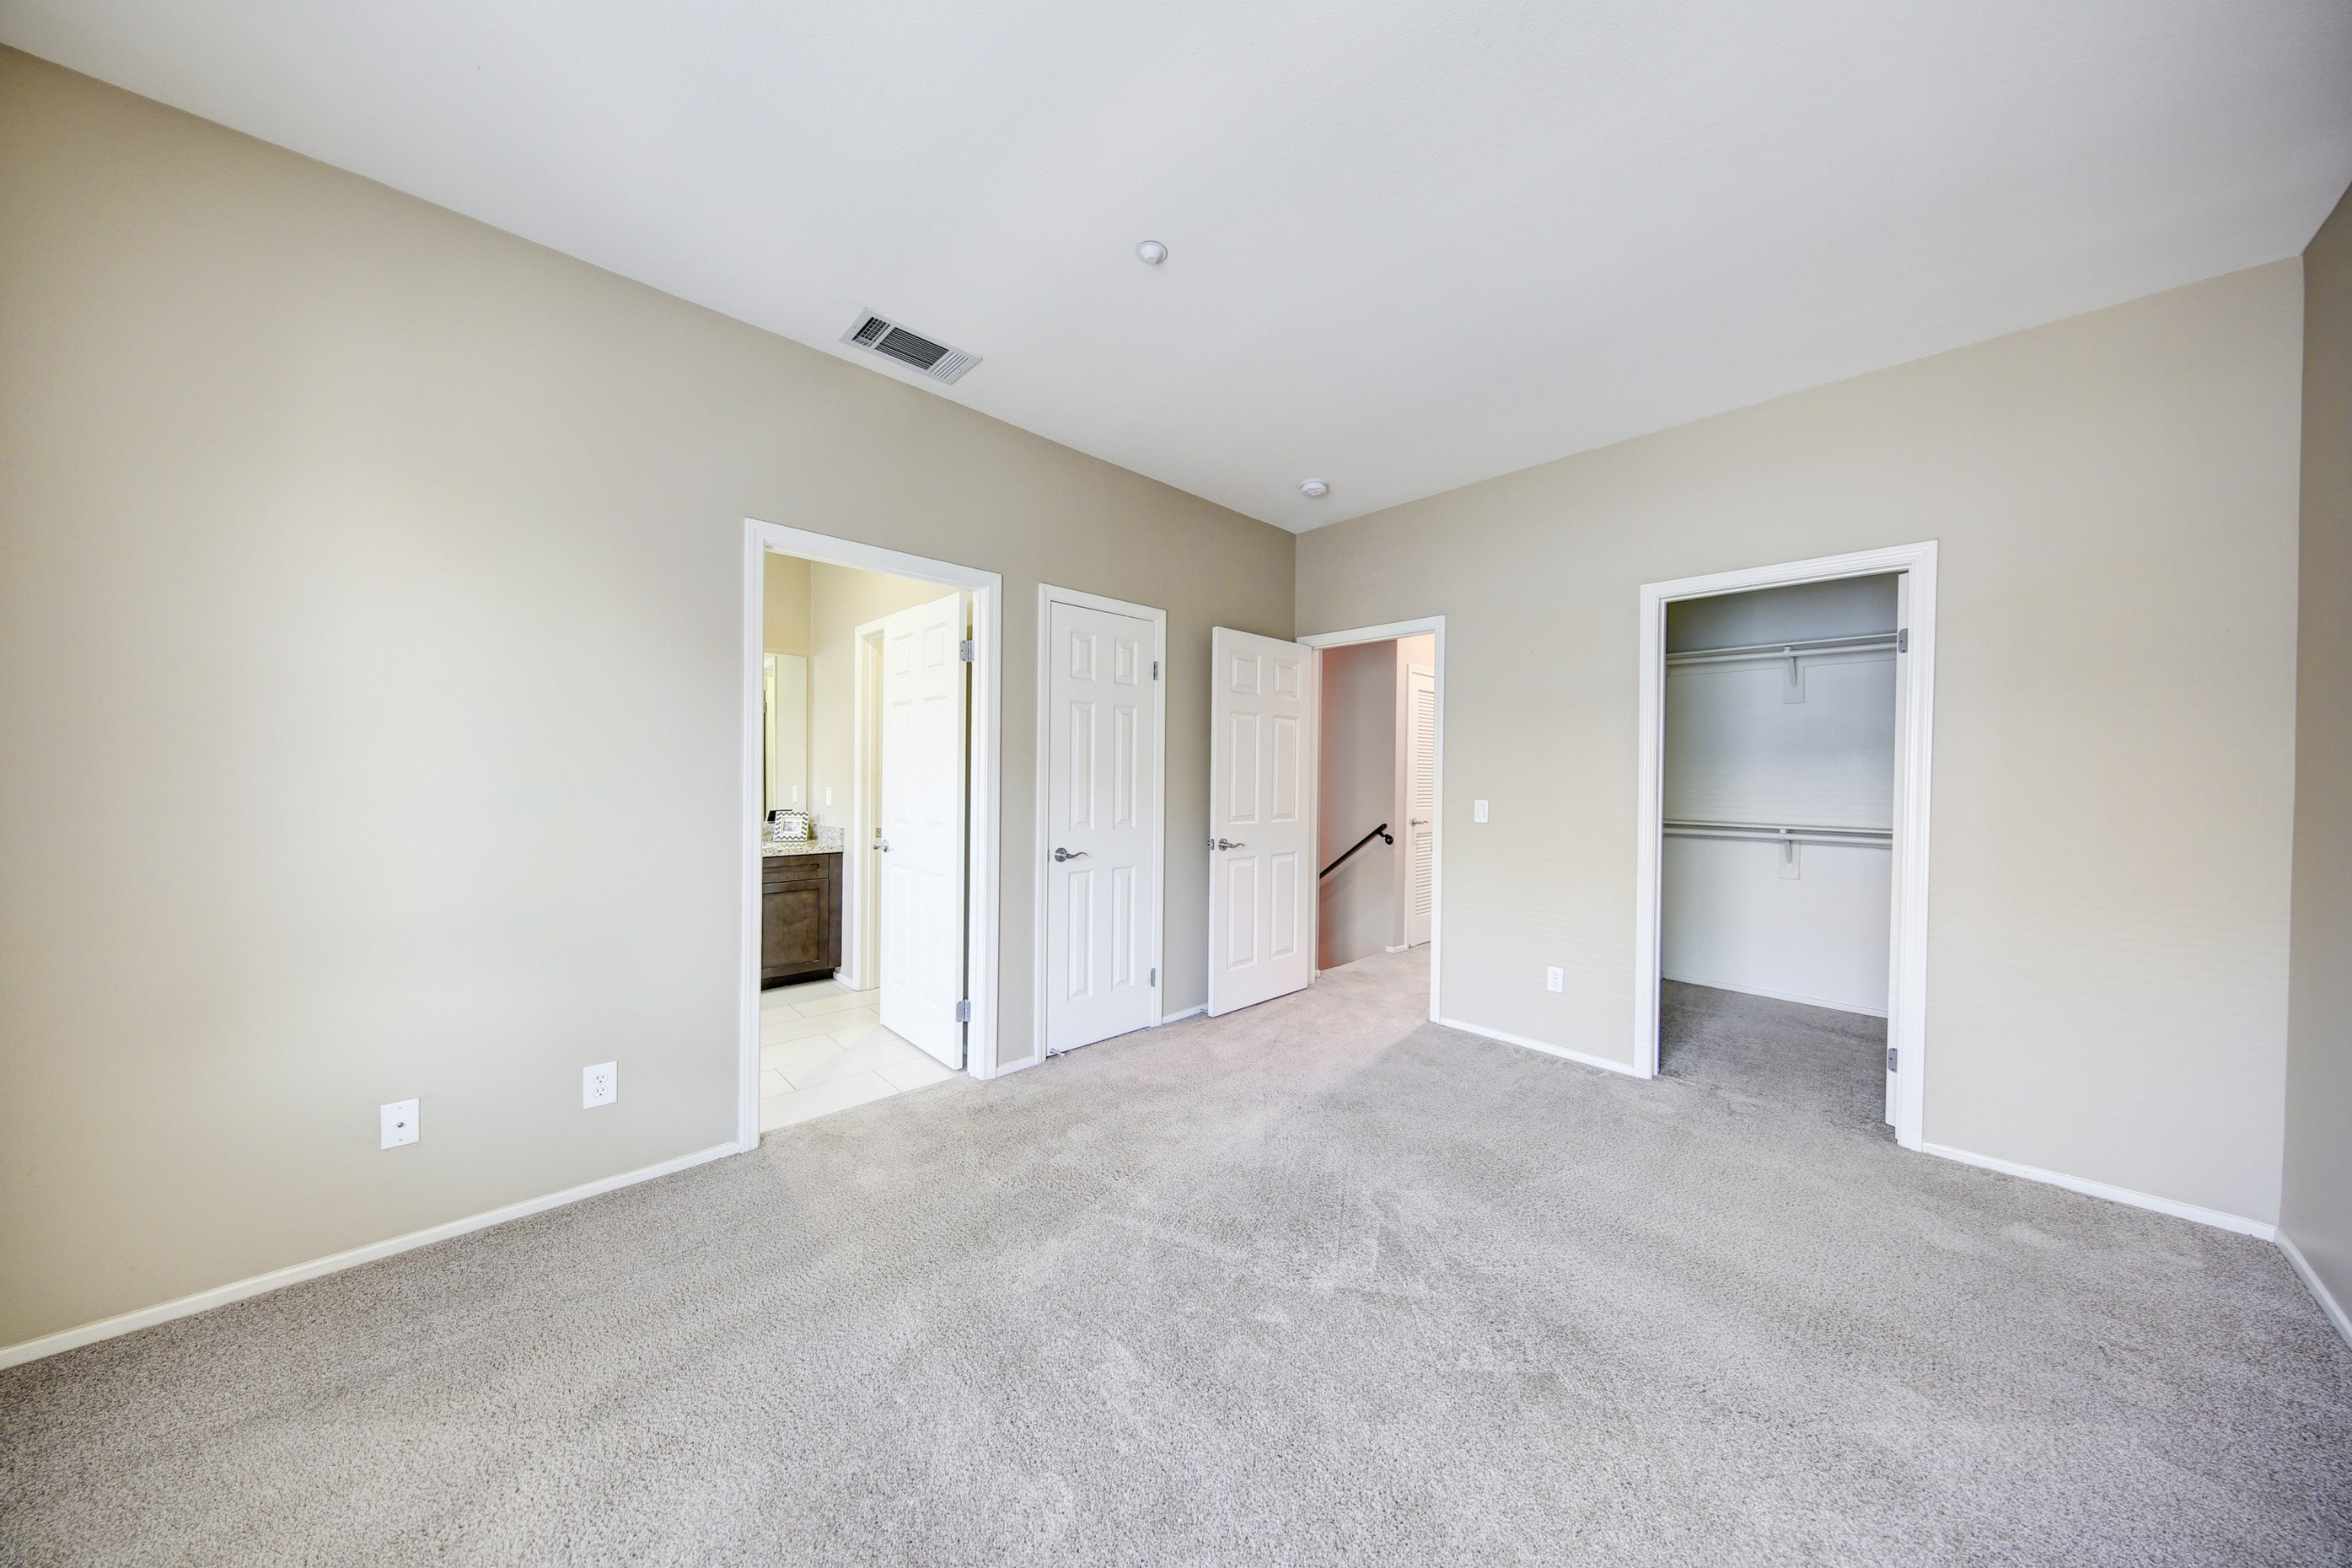 Wall-to-Wall Carpeting at Ontario Town Square Townhomes, Ontario, CA